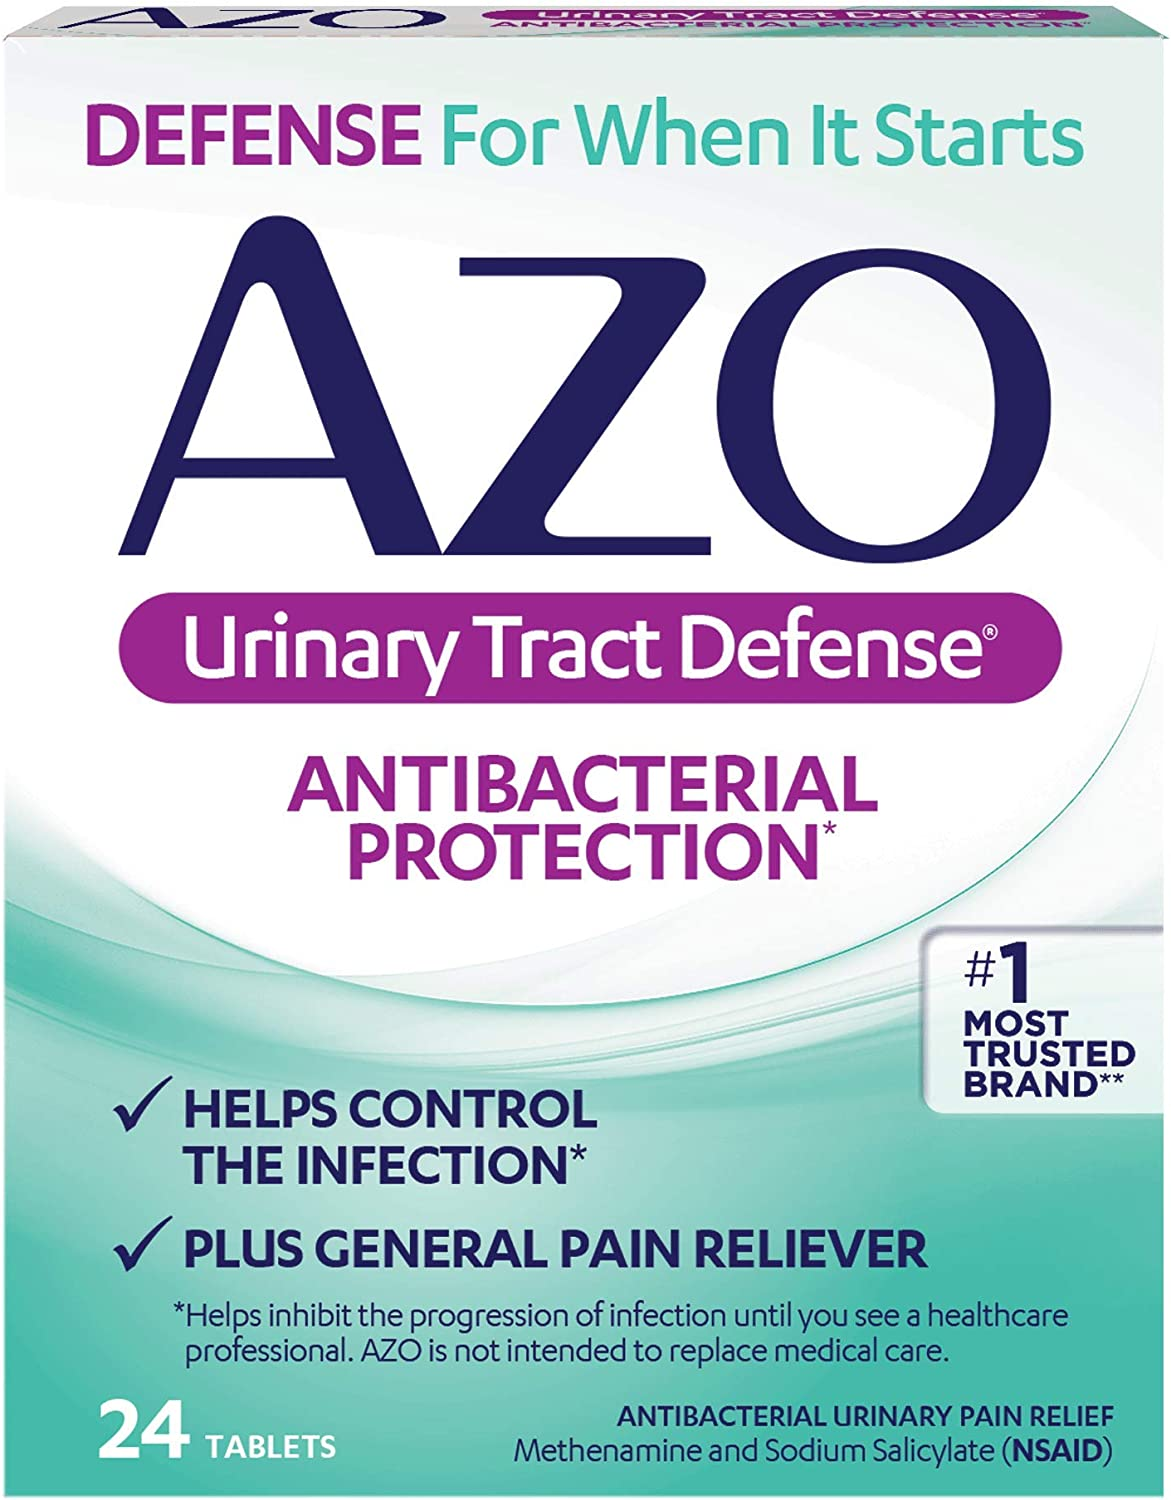 AZO Urinary Tract Defense Antibacterial Protection | Helps Control a UTI Until You Can See a Doctor | #1 Most Trusted Urinary Health Brand | 24 Tablets: Health & Personal Care